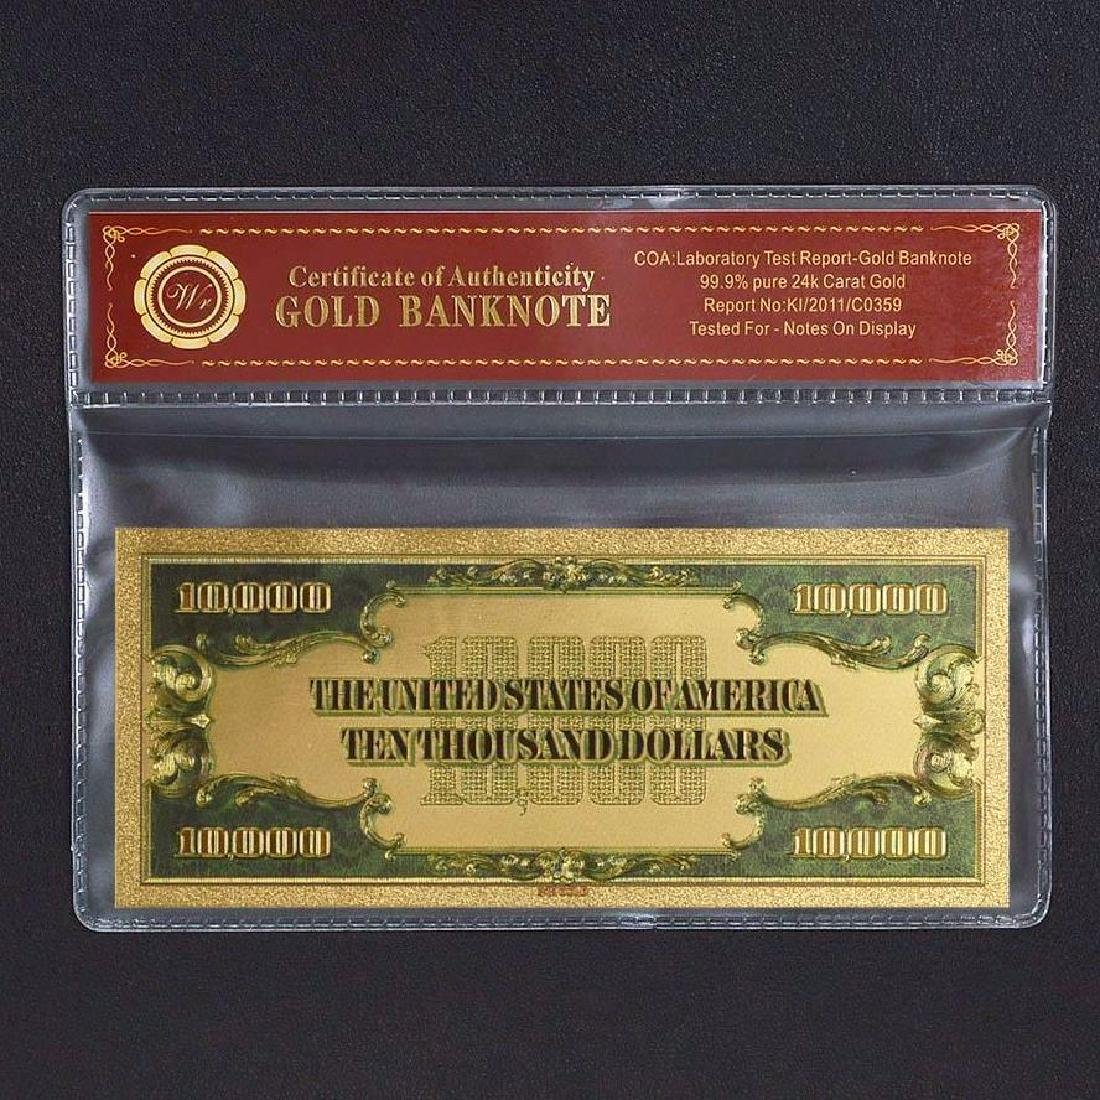 USA $10,000 24K Gold Clad Banknote - 2